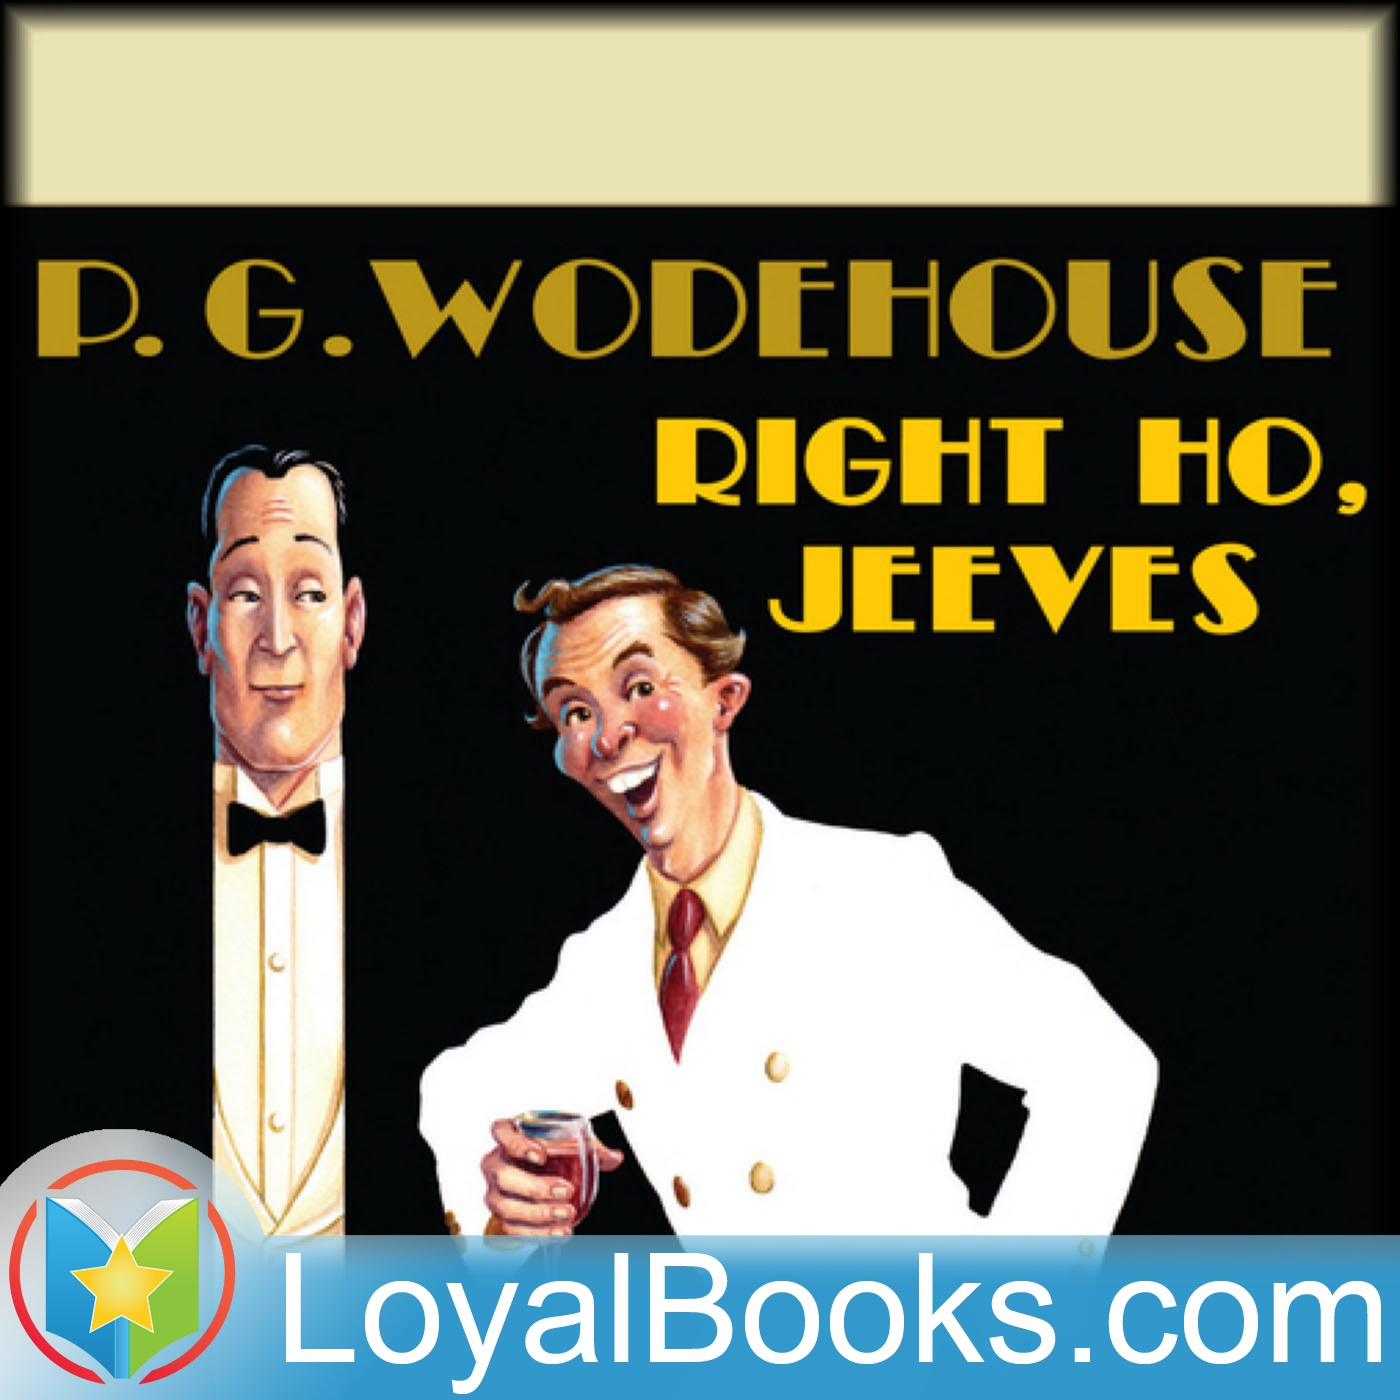 <![CDATA[Right Ho, Jeeves by P. G. Wodehouse]]>